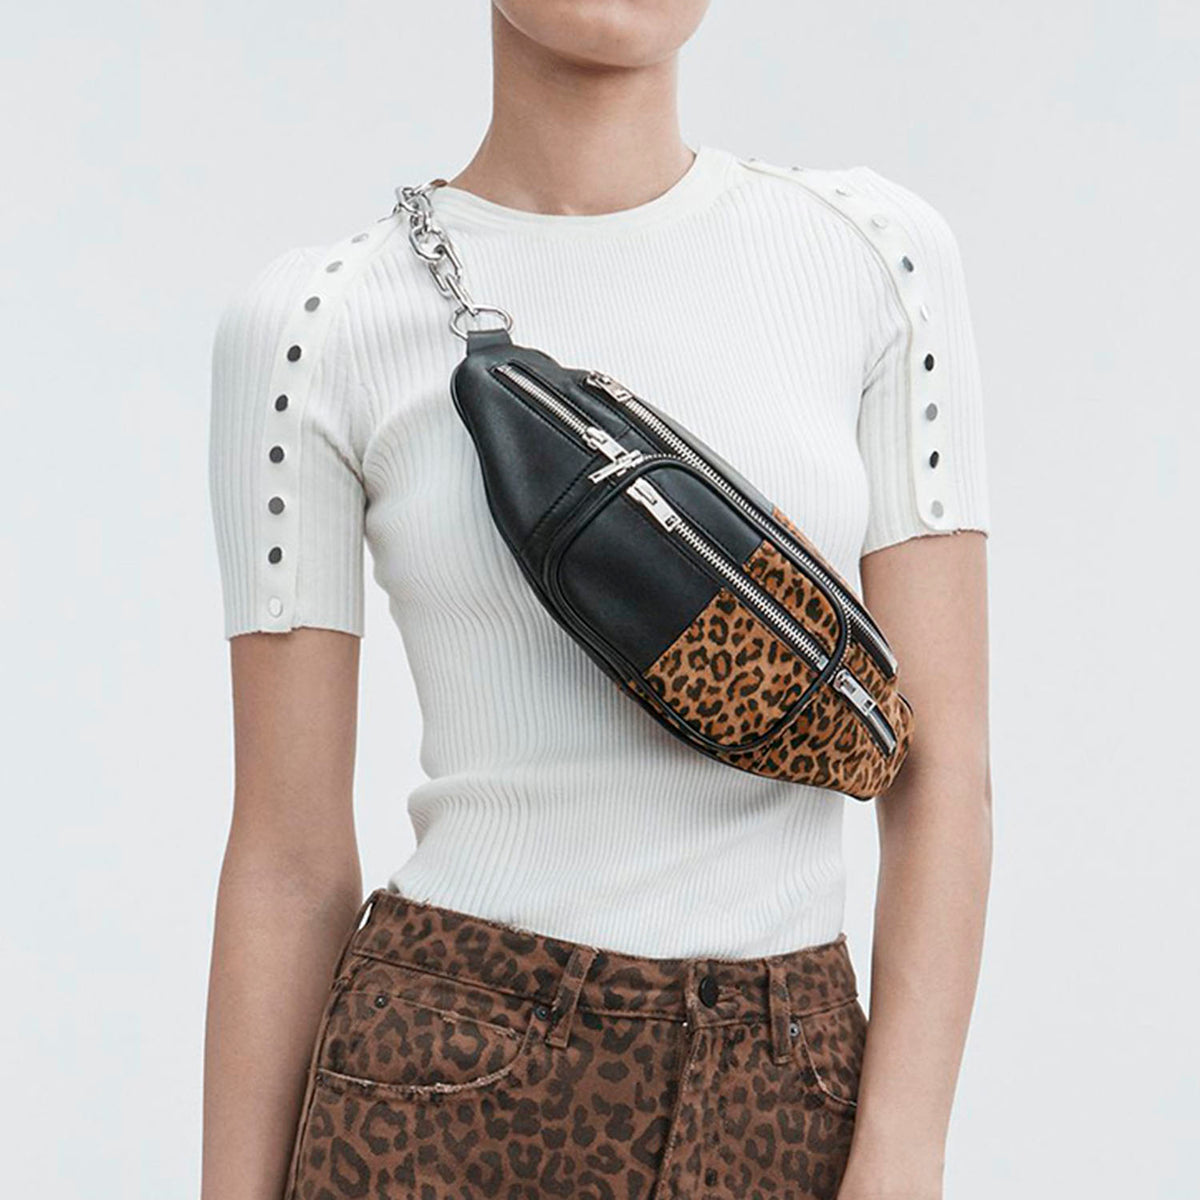 Faux Leather Fanny Pack - worthtryit.com